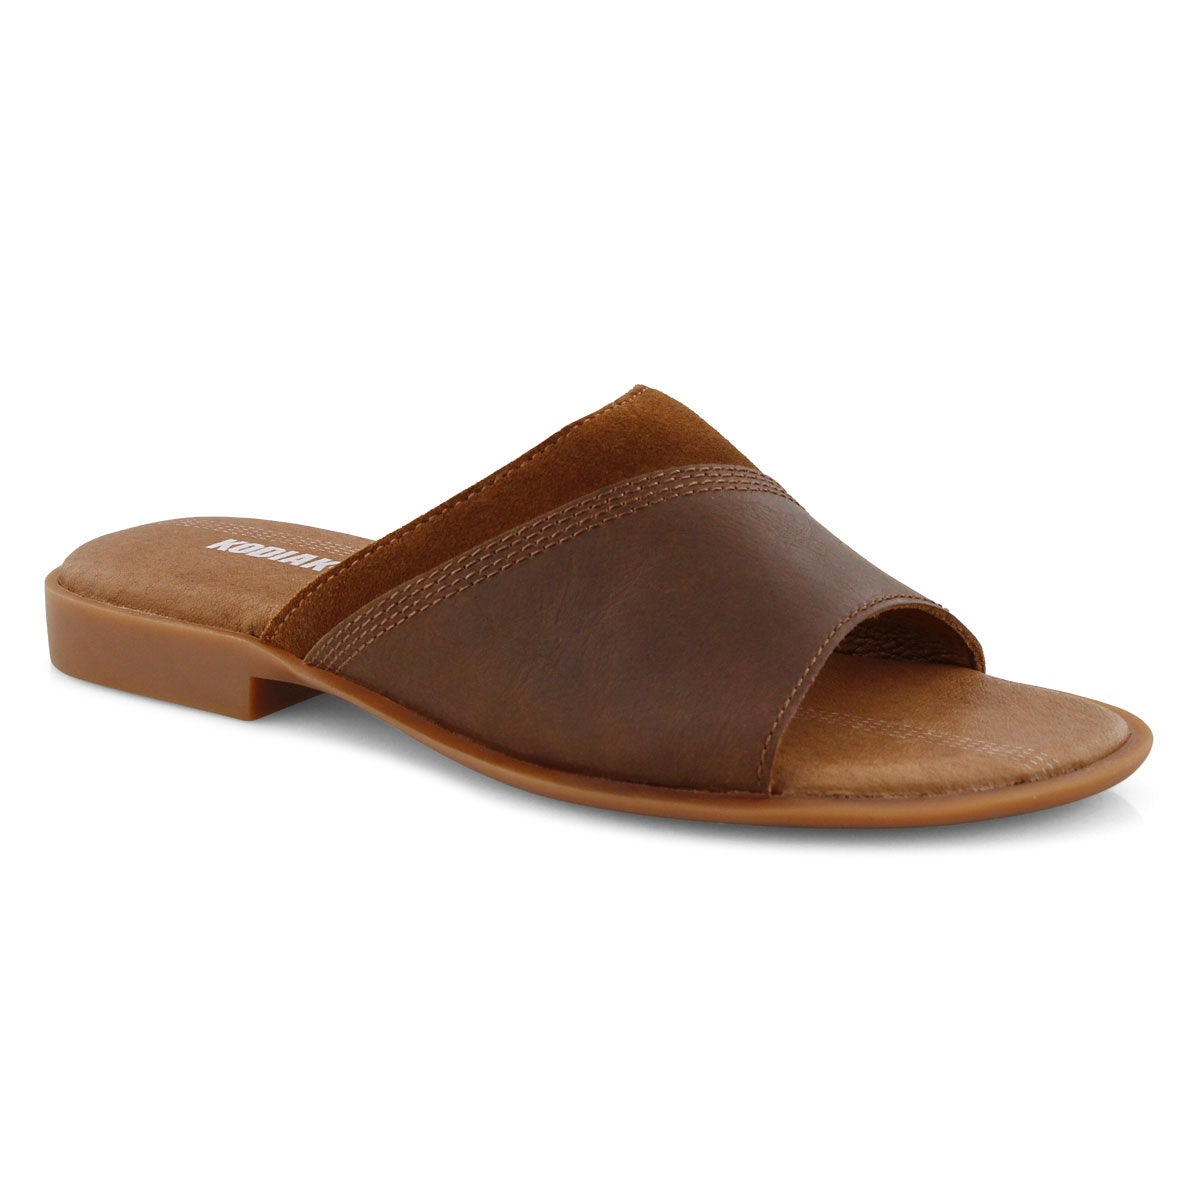 Lds Alexi wheat casual slide sandal